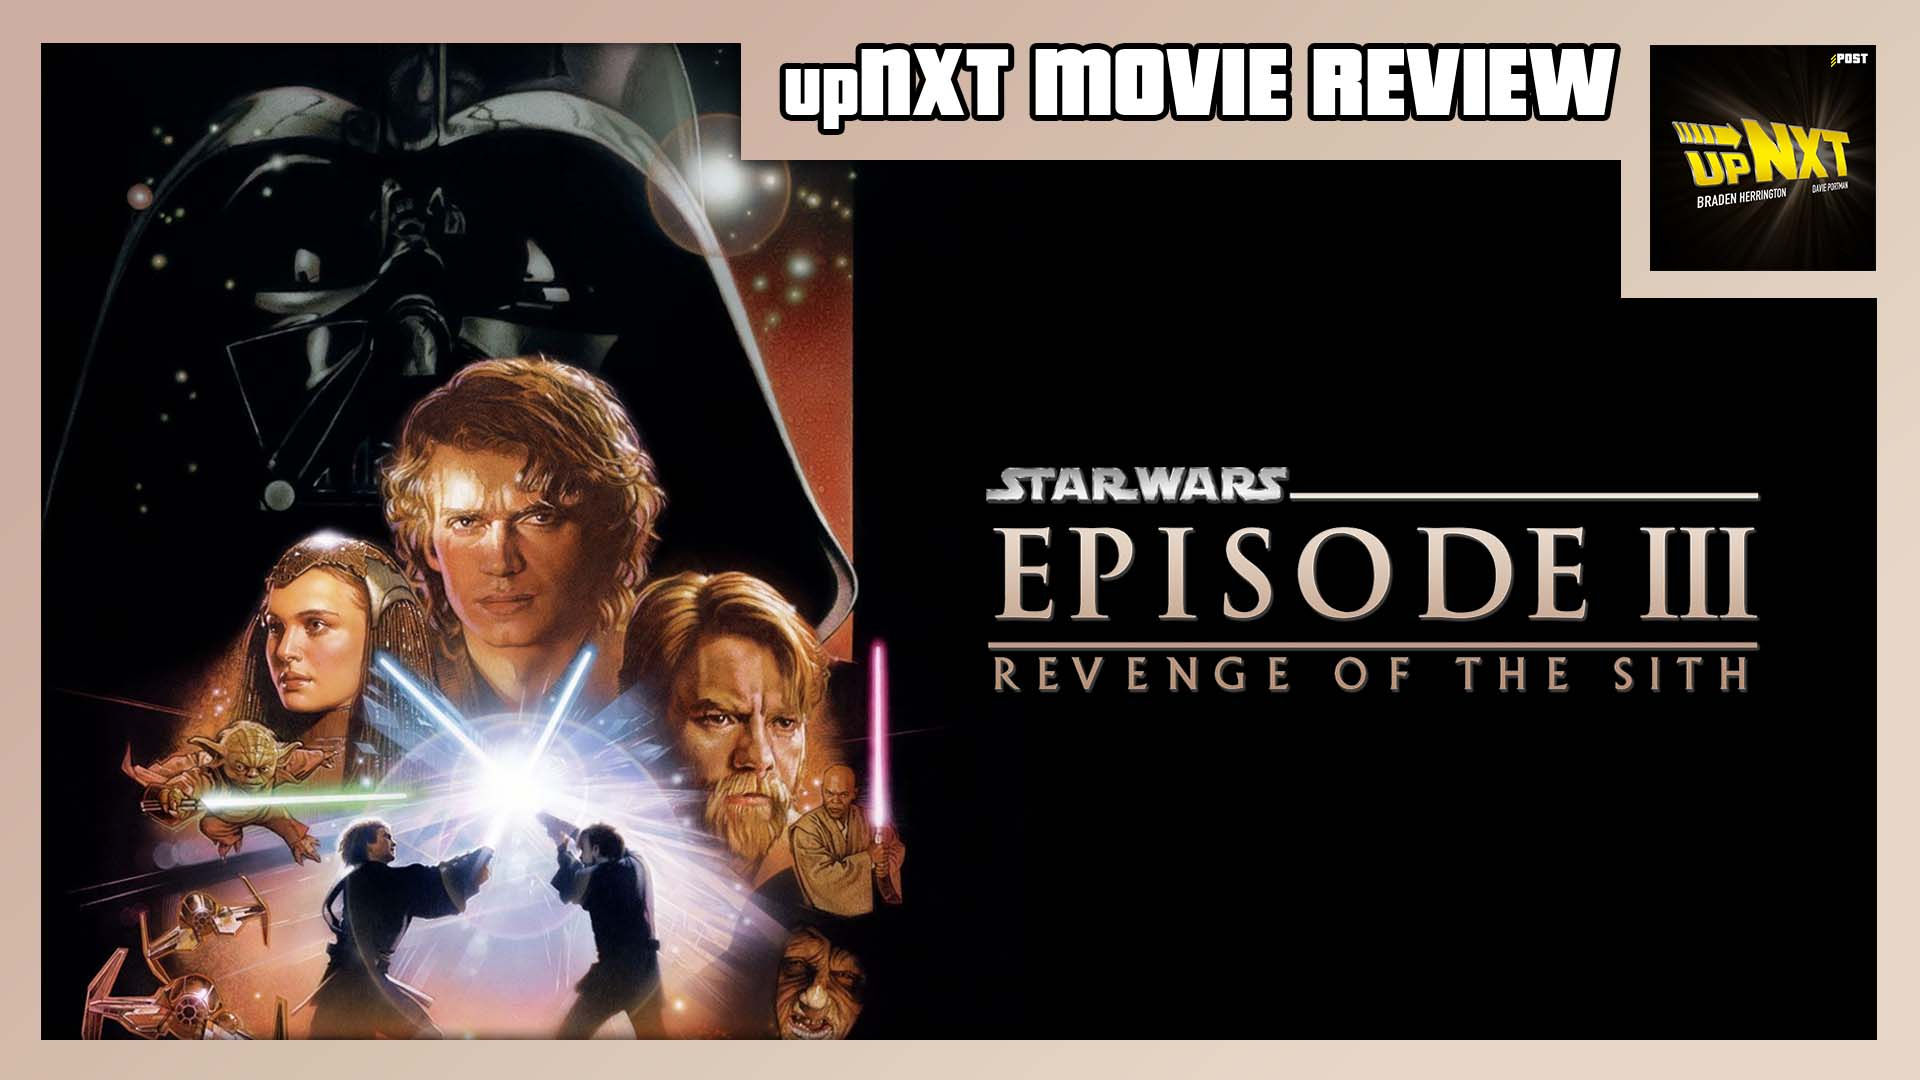 Upnxt Movie Review Star Wars Episode Iii Revenge Of The Sith 2005 Post Wrestling Wwe Nxt Aew Njpw Ufc Podcasts News Reviews